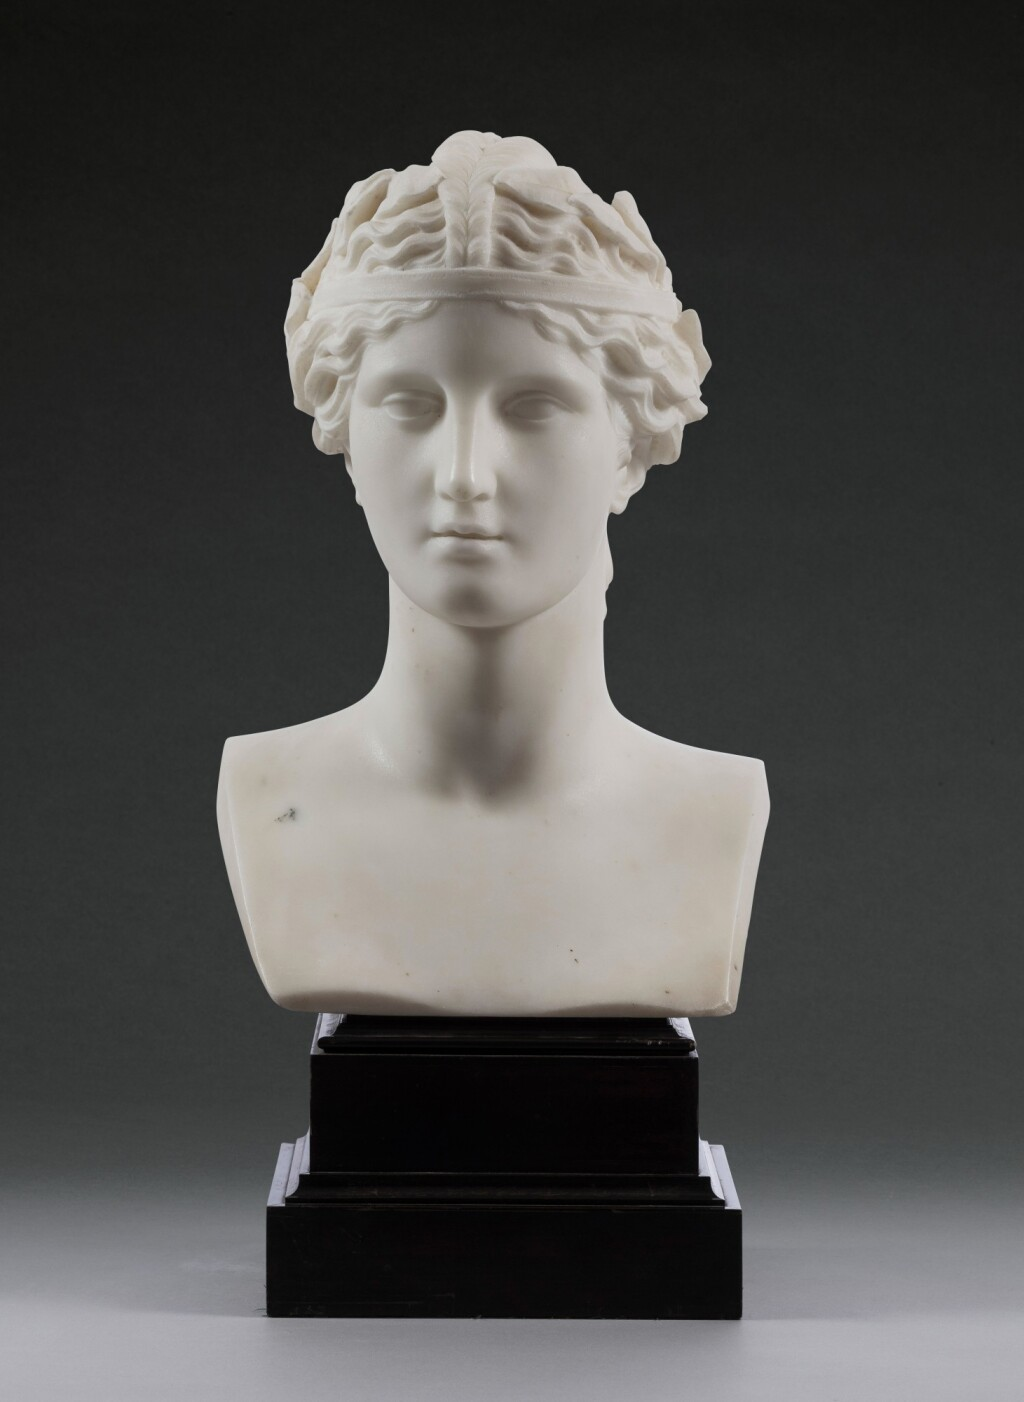 ITALIAN, 19TH CENTURY | BUST OF A WOMAN IN CLASSICAL STYLE